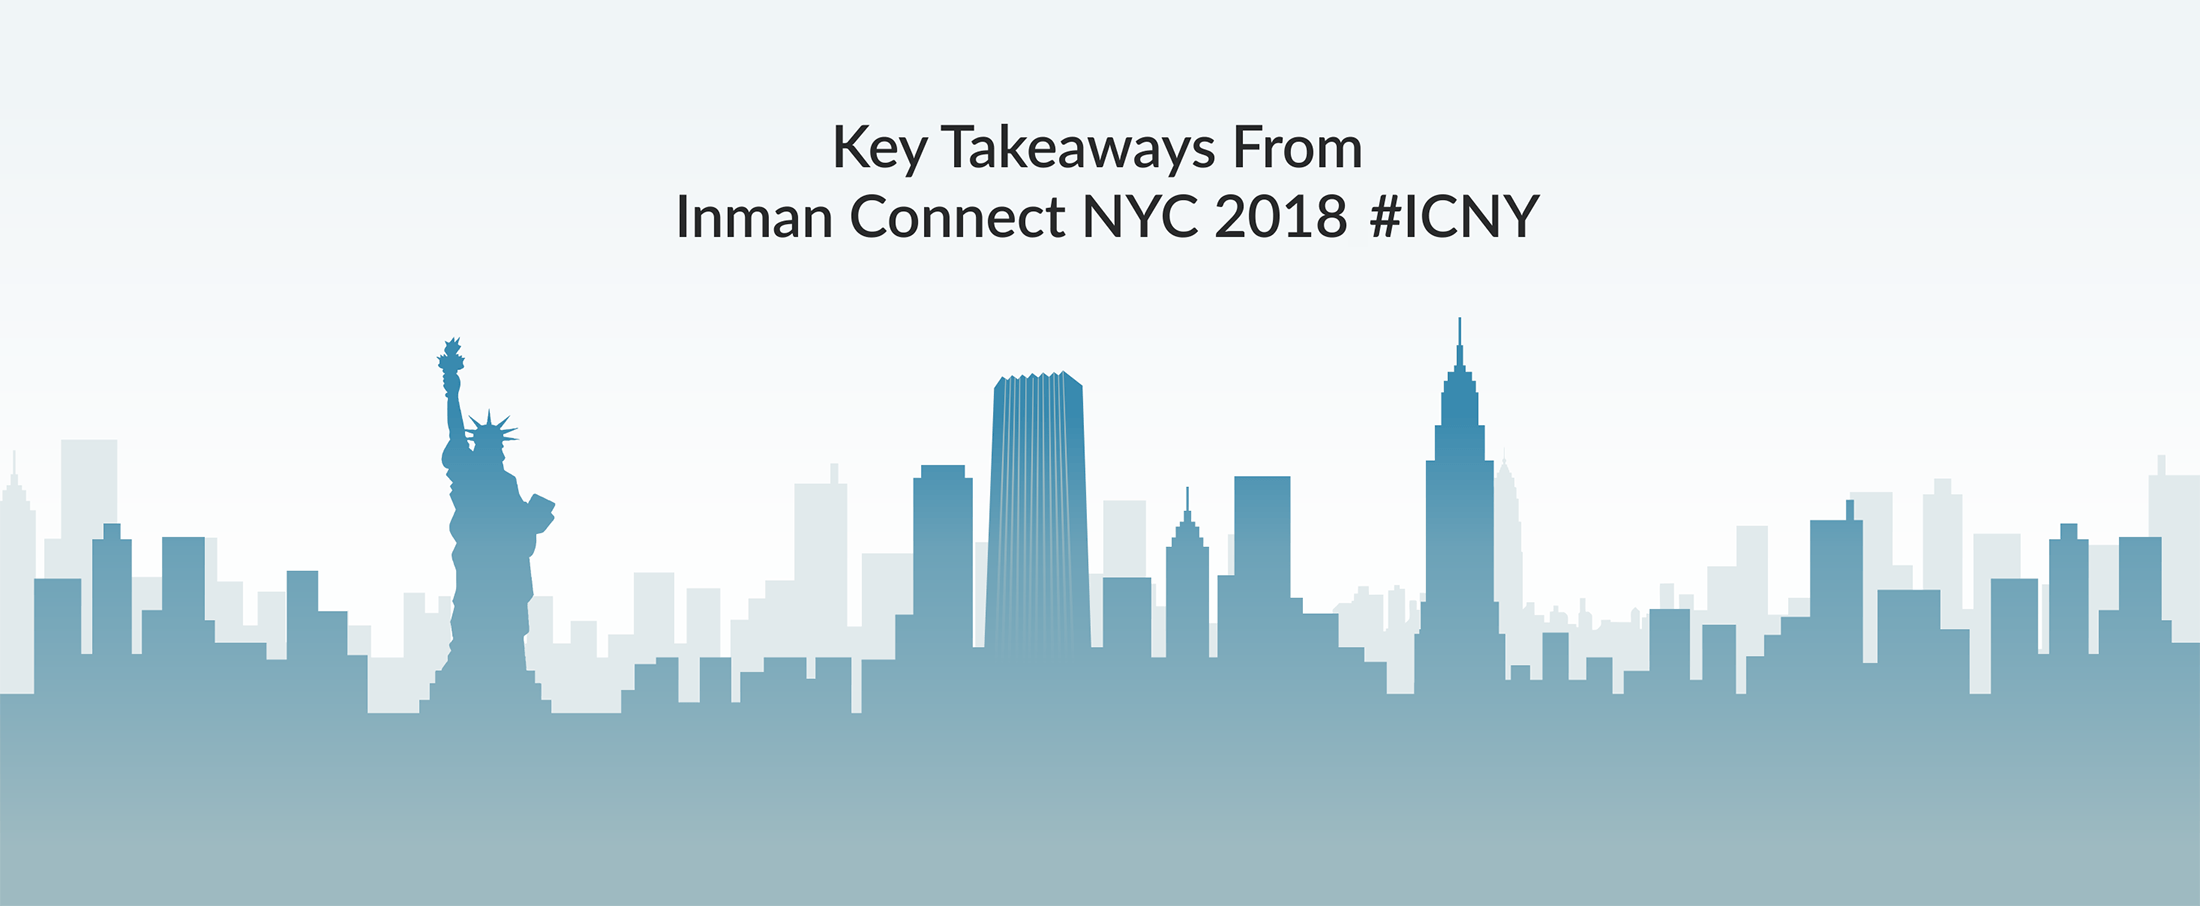 Key Takeaways From Inman Connect NYC 2018 #ICNY